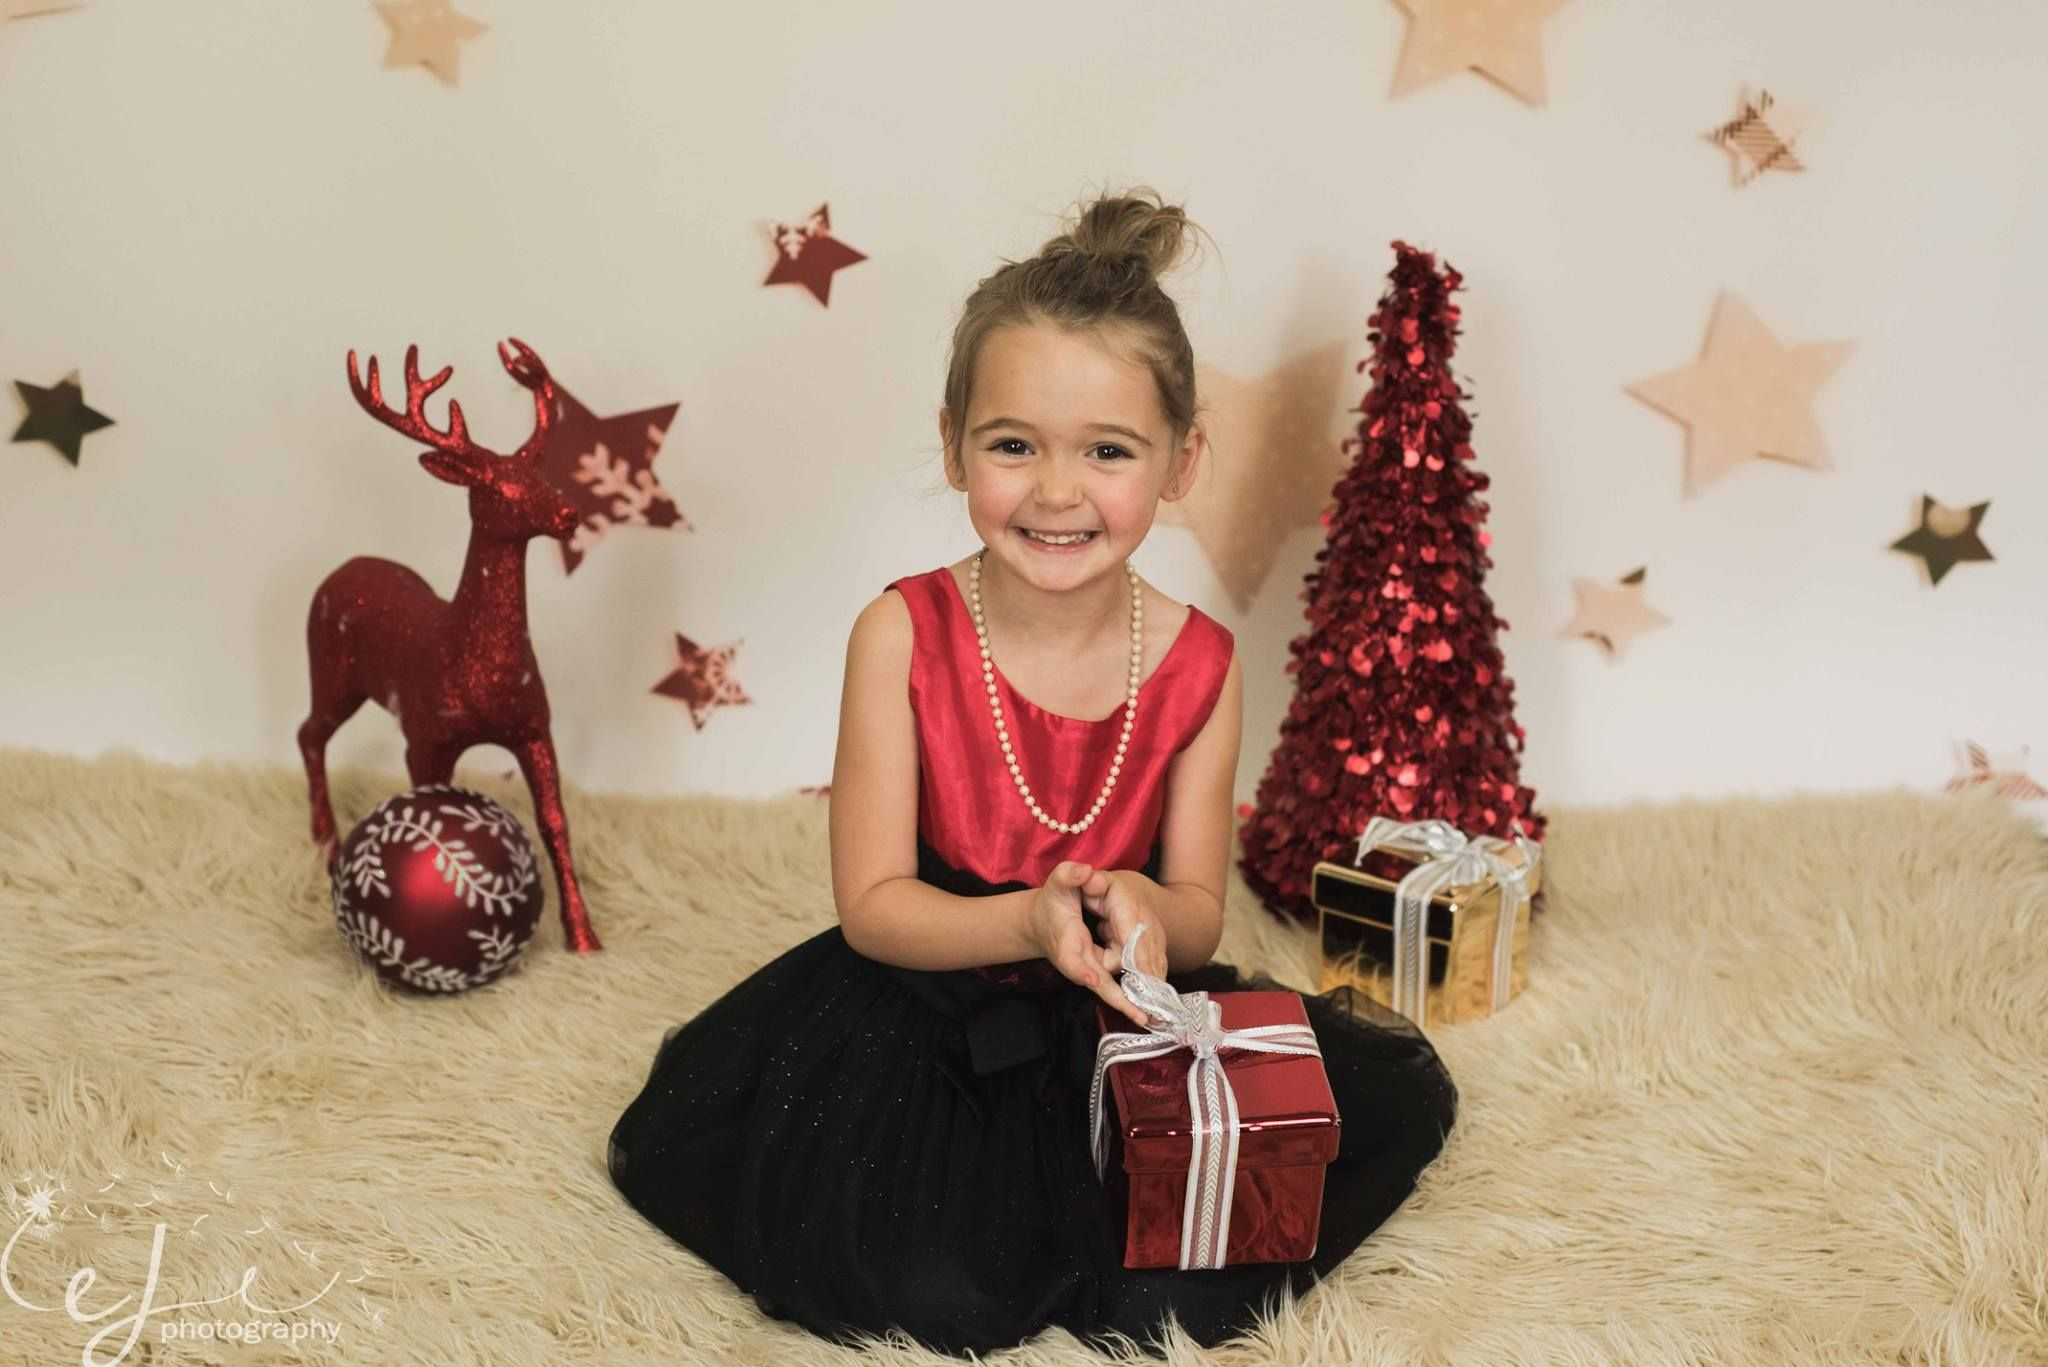 Adorable Christmas Mini Set Up by Evelyn Jane Photography using Paper Stars backdrop. Order online at www.backdropscanada.ca